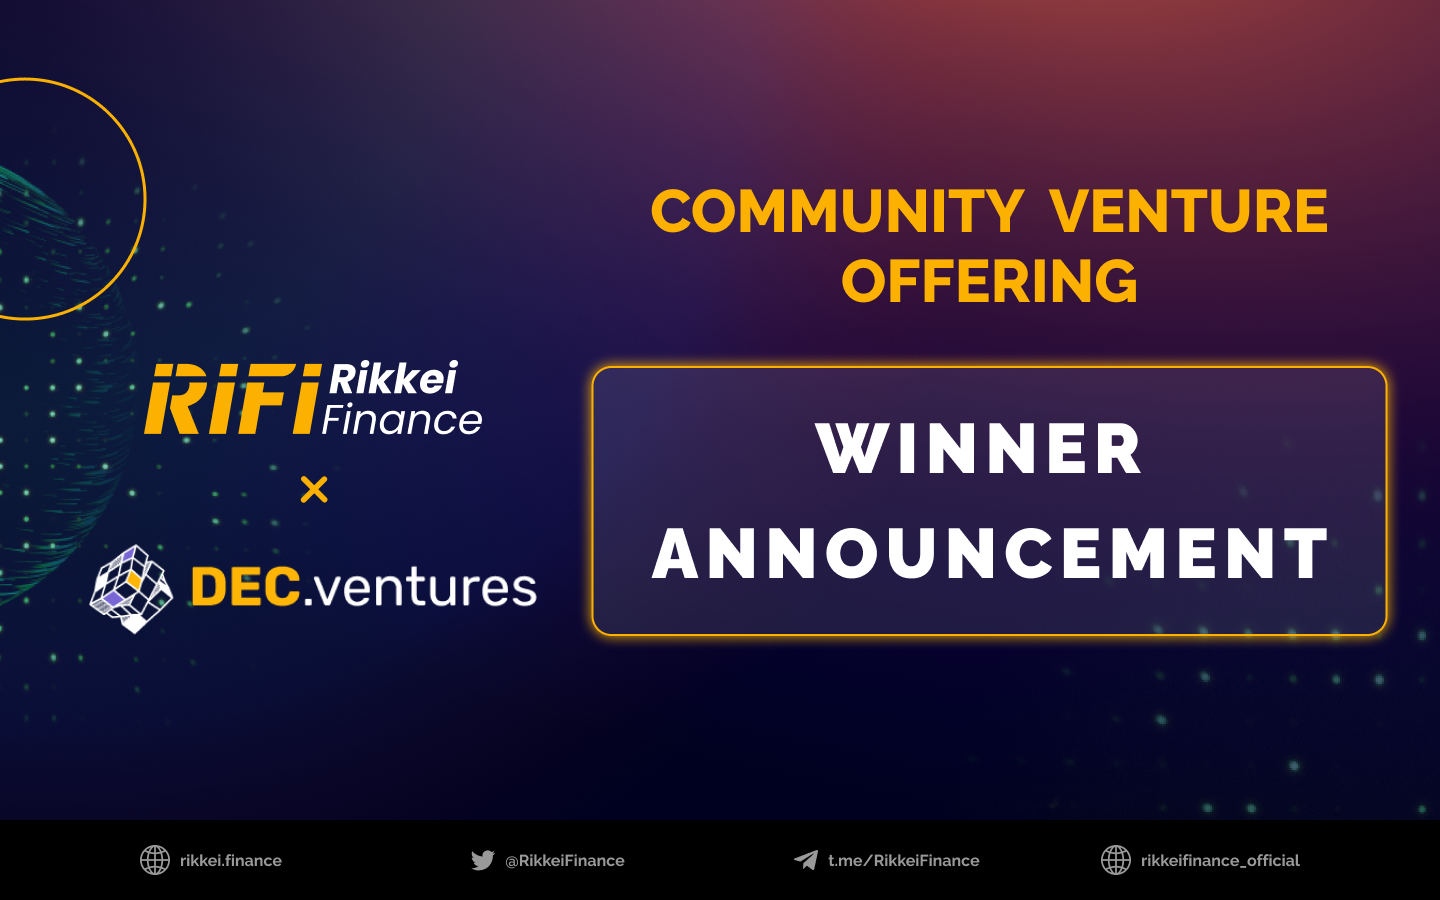 The Community Venture Offering's Winners are Finally Announced